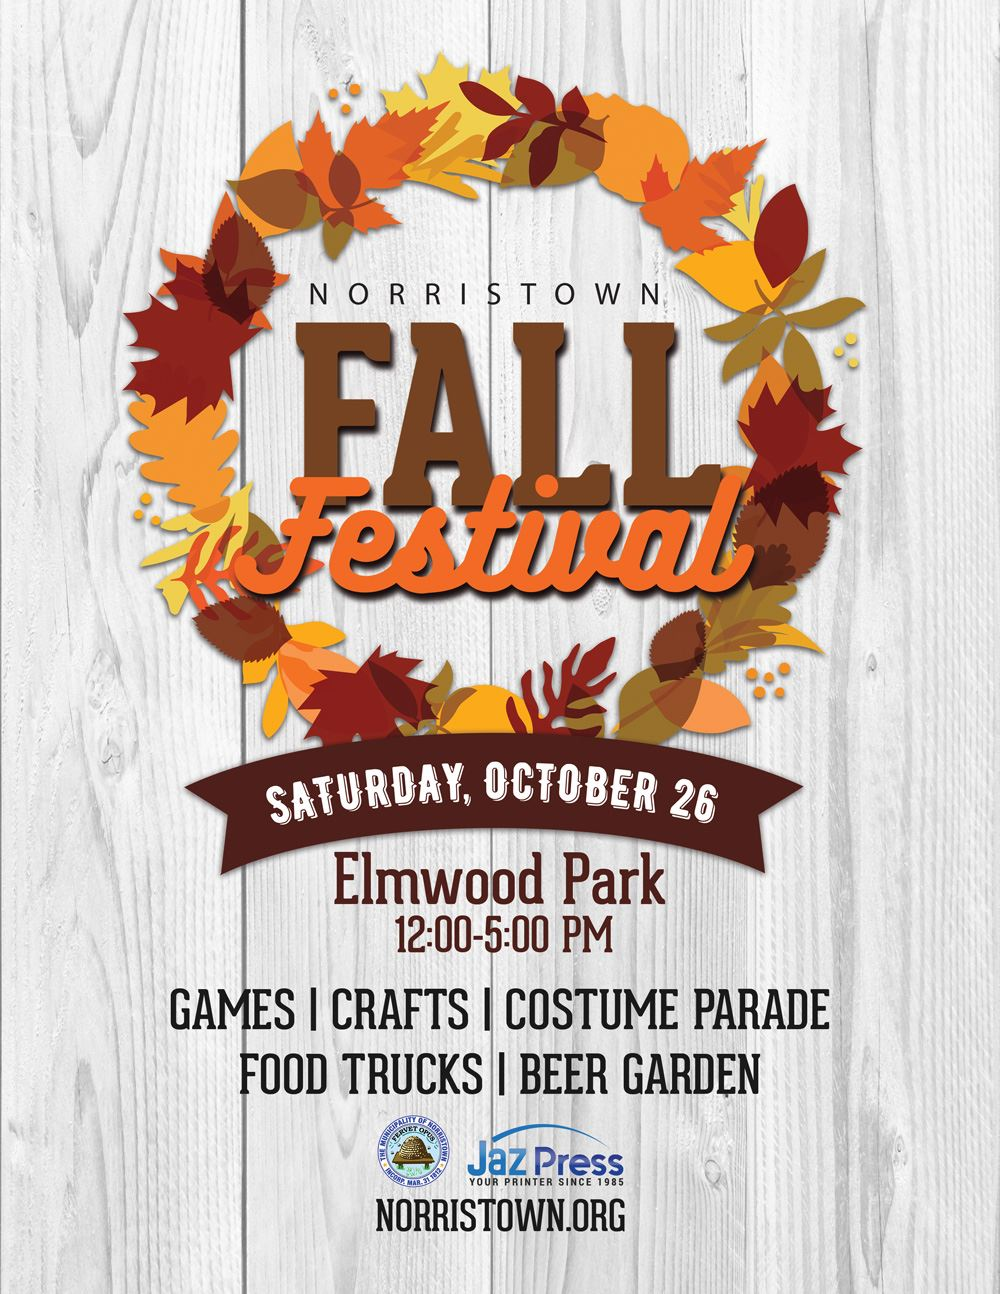 norristown fall festival on October 26th at elmwood park